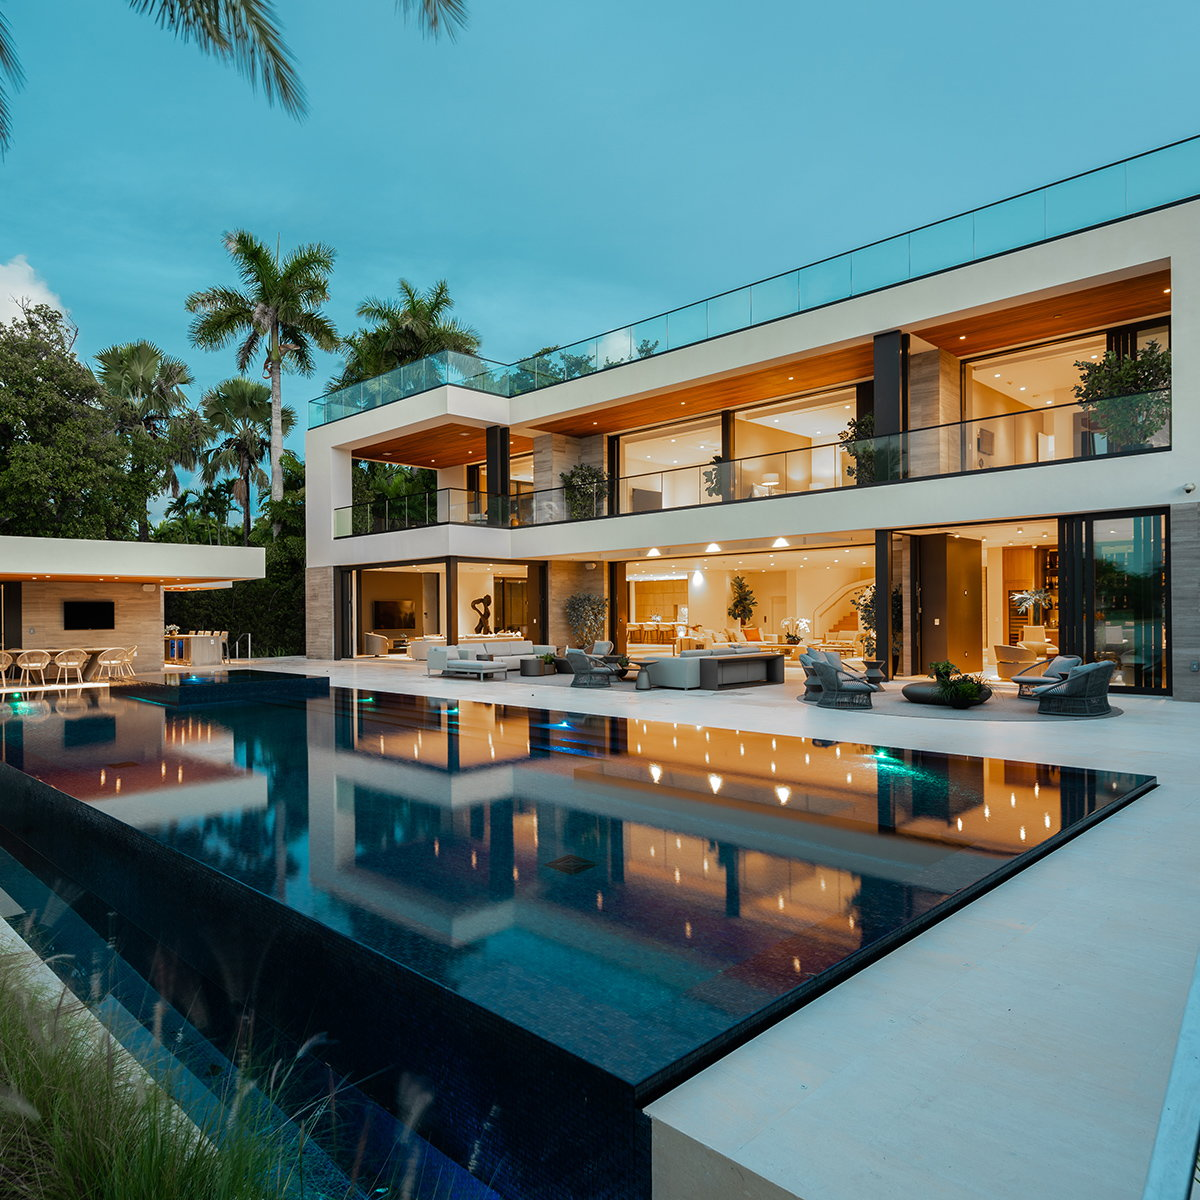 Choeff Levy Fischman Designs Three-Structure Modern Manse in Miami Beach